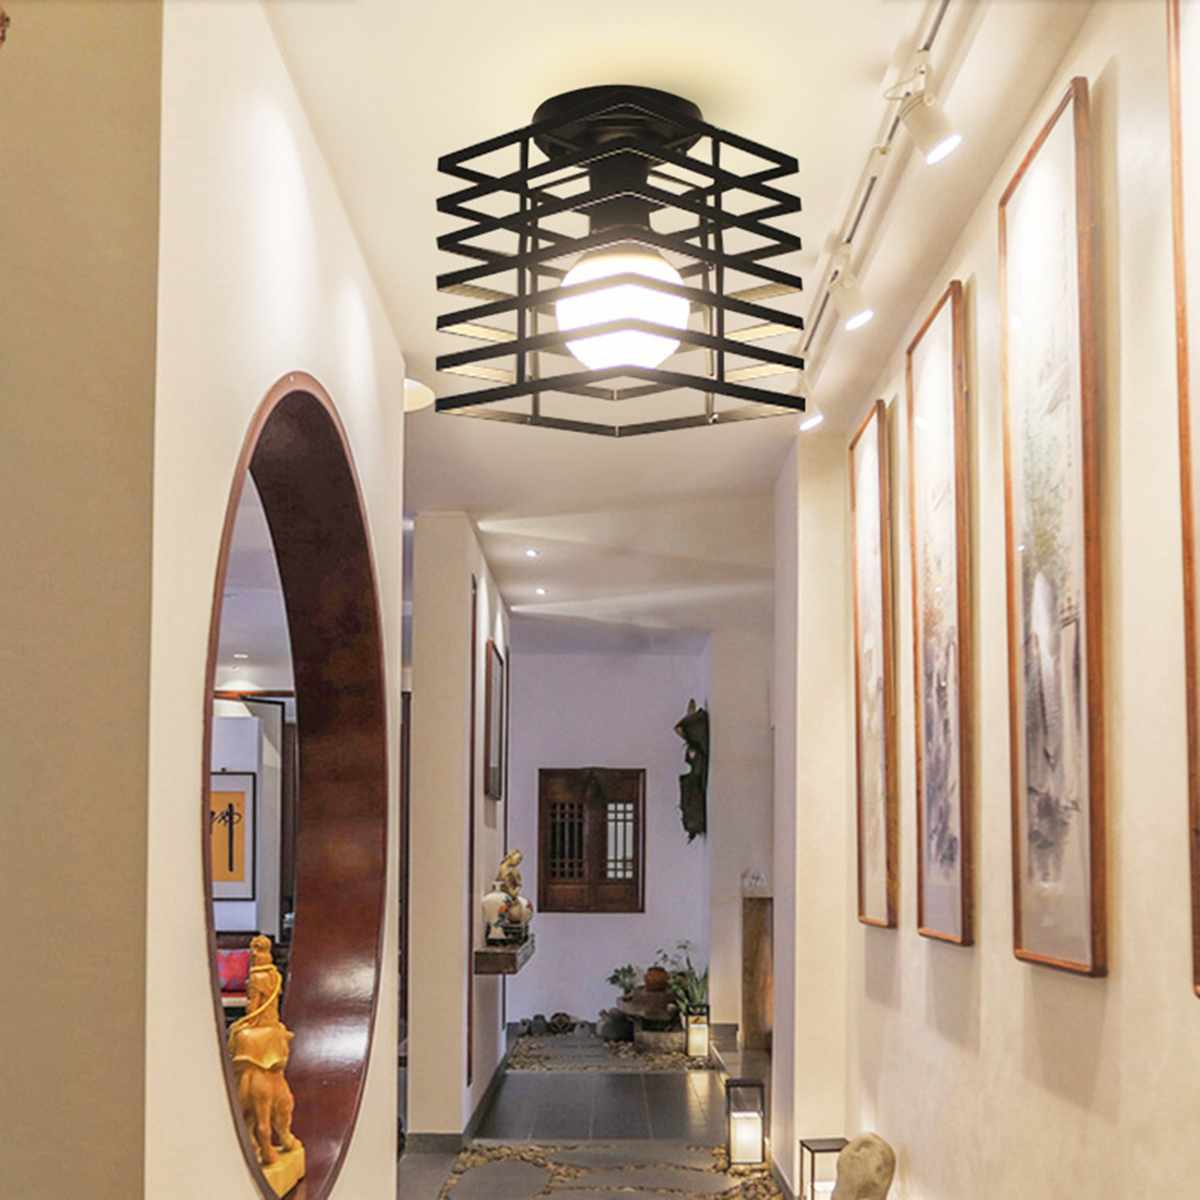 Modern Corridor LED Ceiling Light Pathway Aisle Ceiling Mounted Lamp Fixture Living Room Bedroom Indoor Lighting Decoration E27